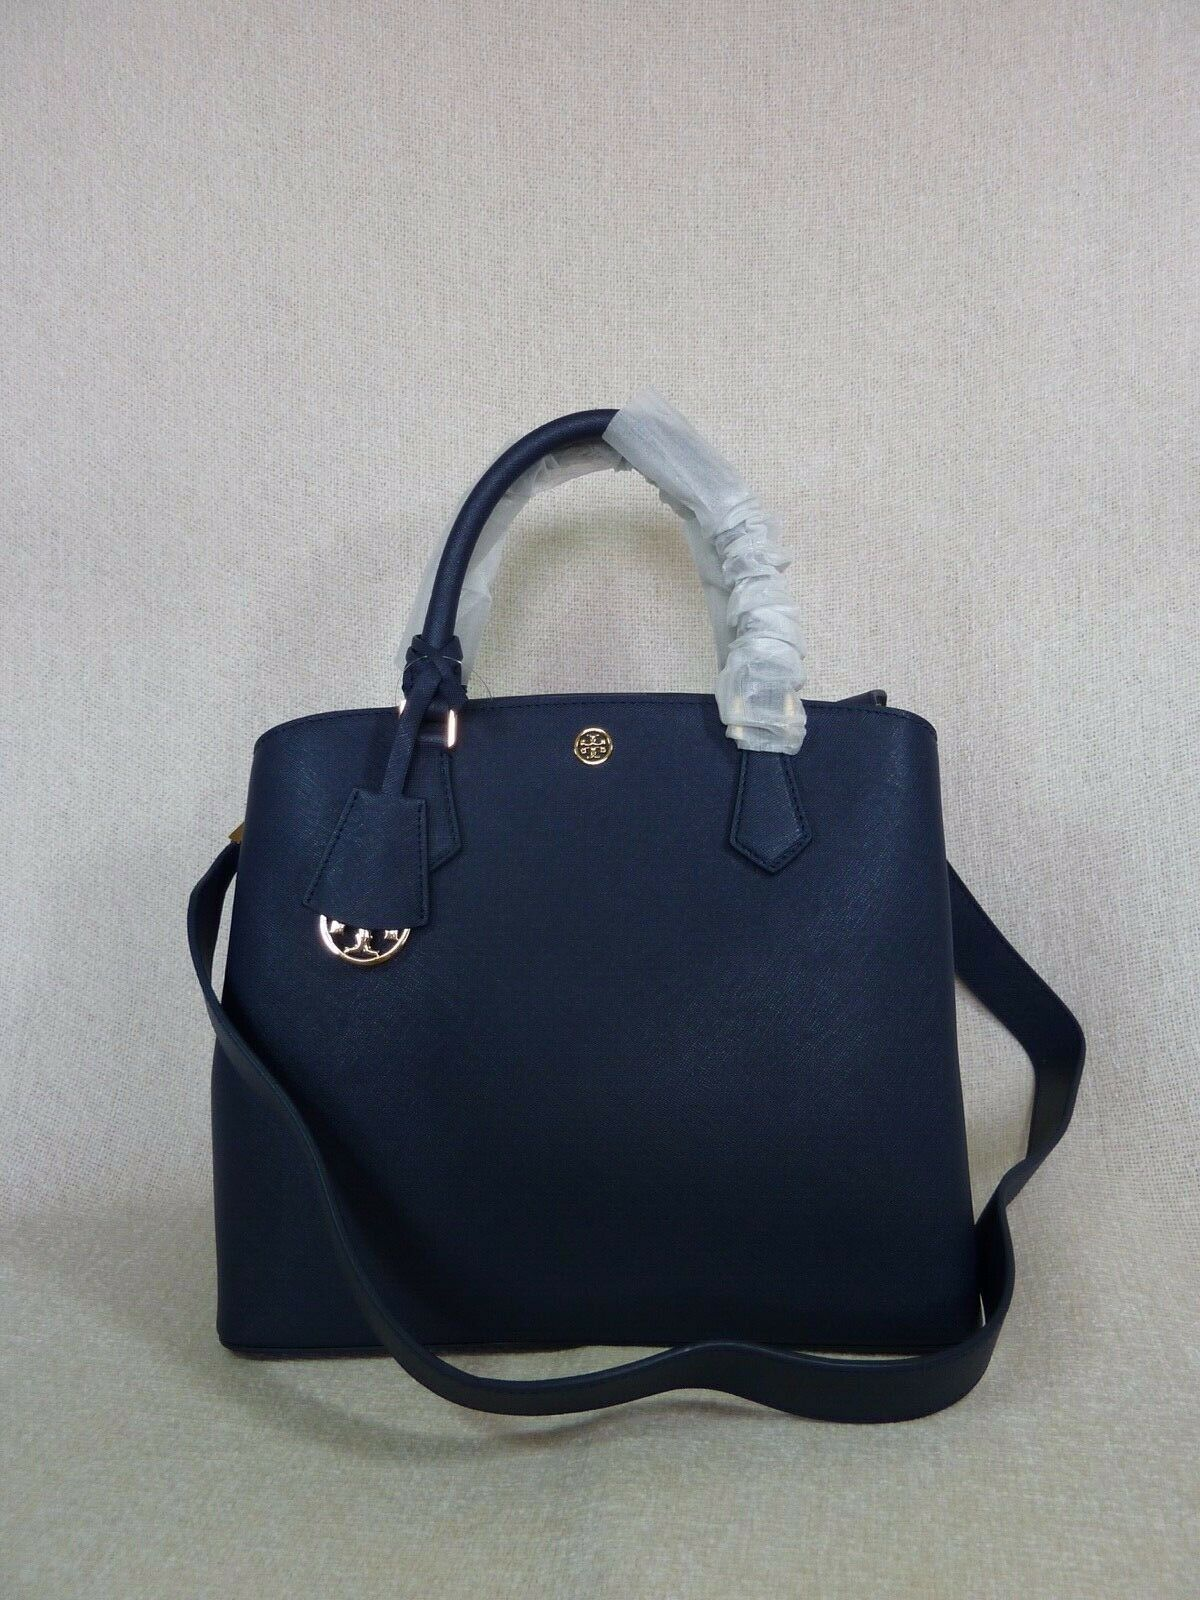 Primary image for NWT Tory Burch Navy Saffiano Leather Robinson Triple-compartment Tote $458